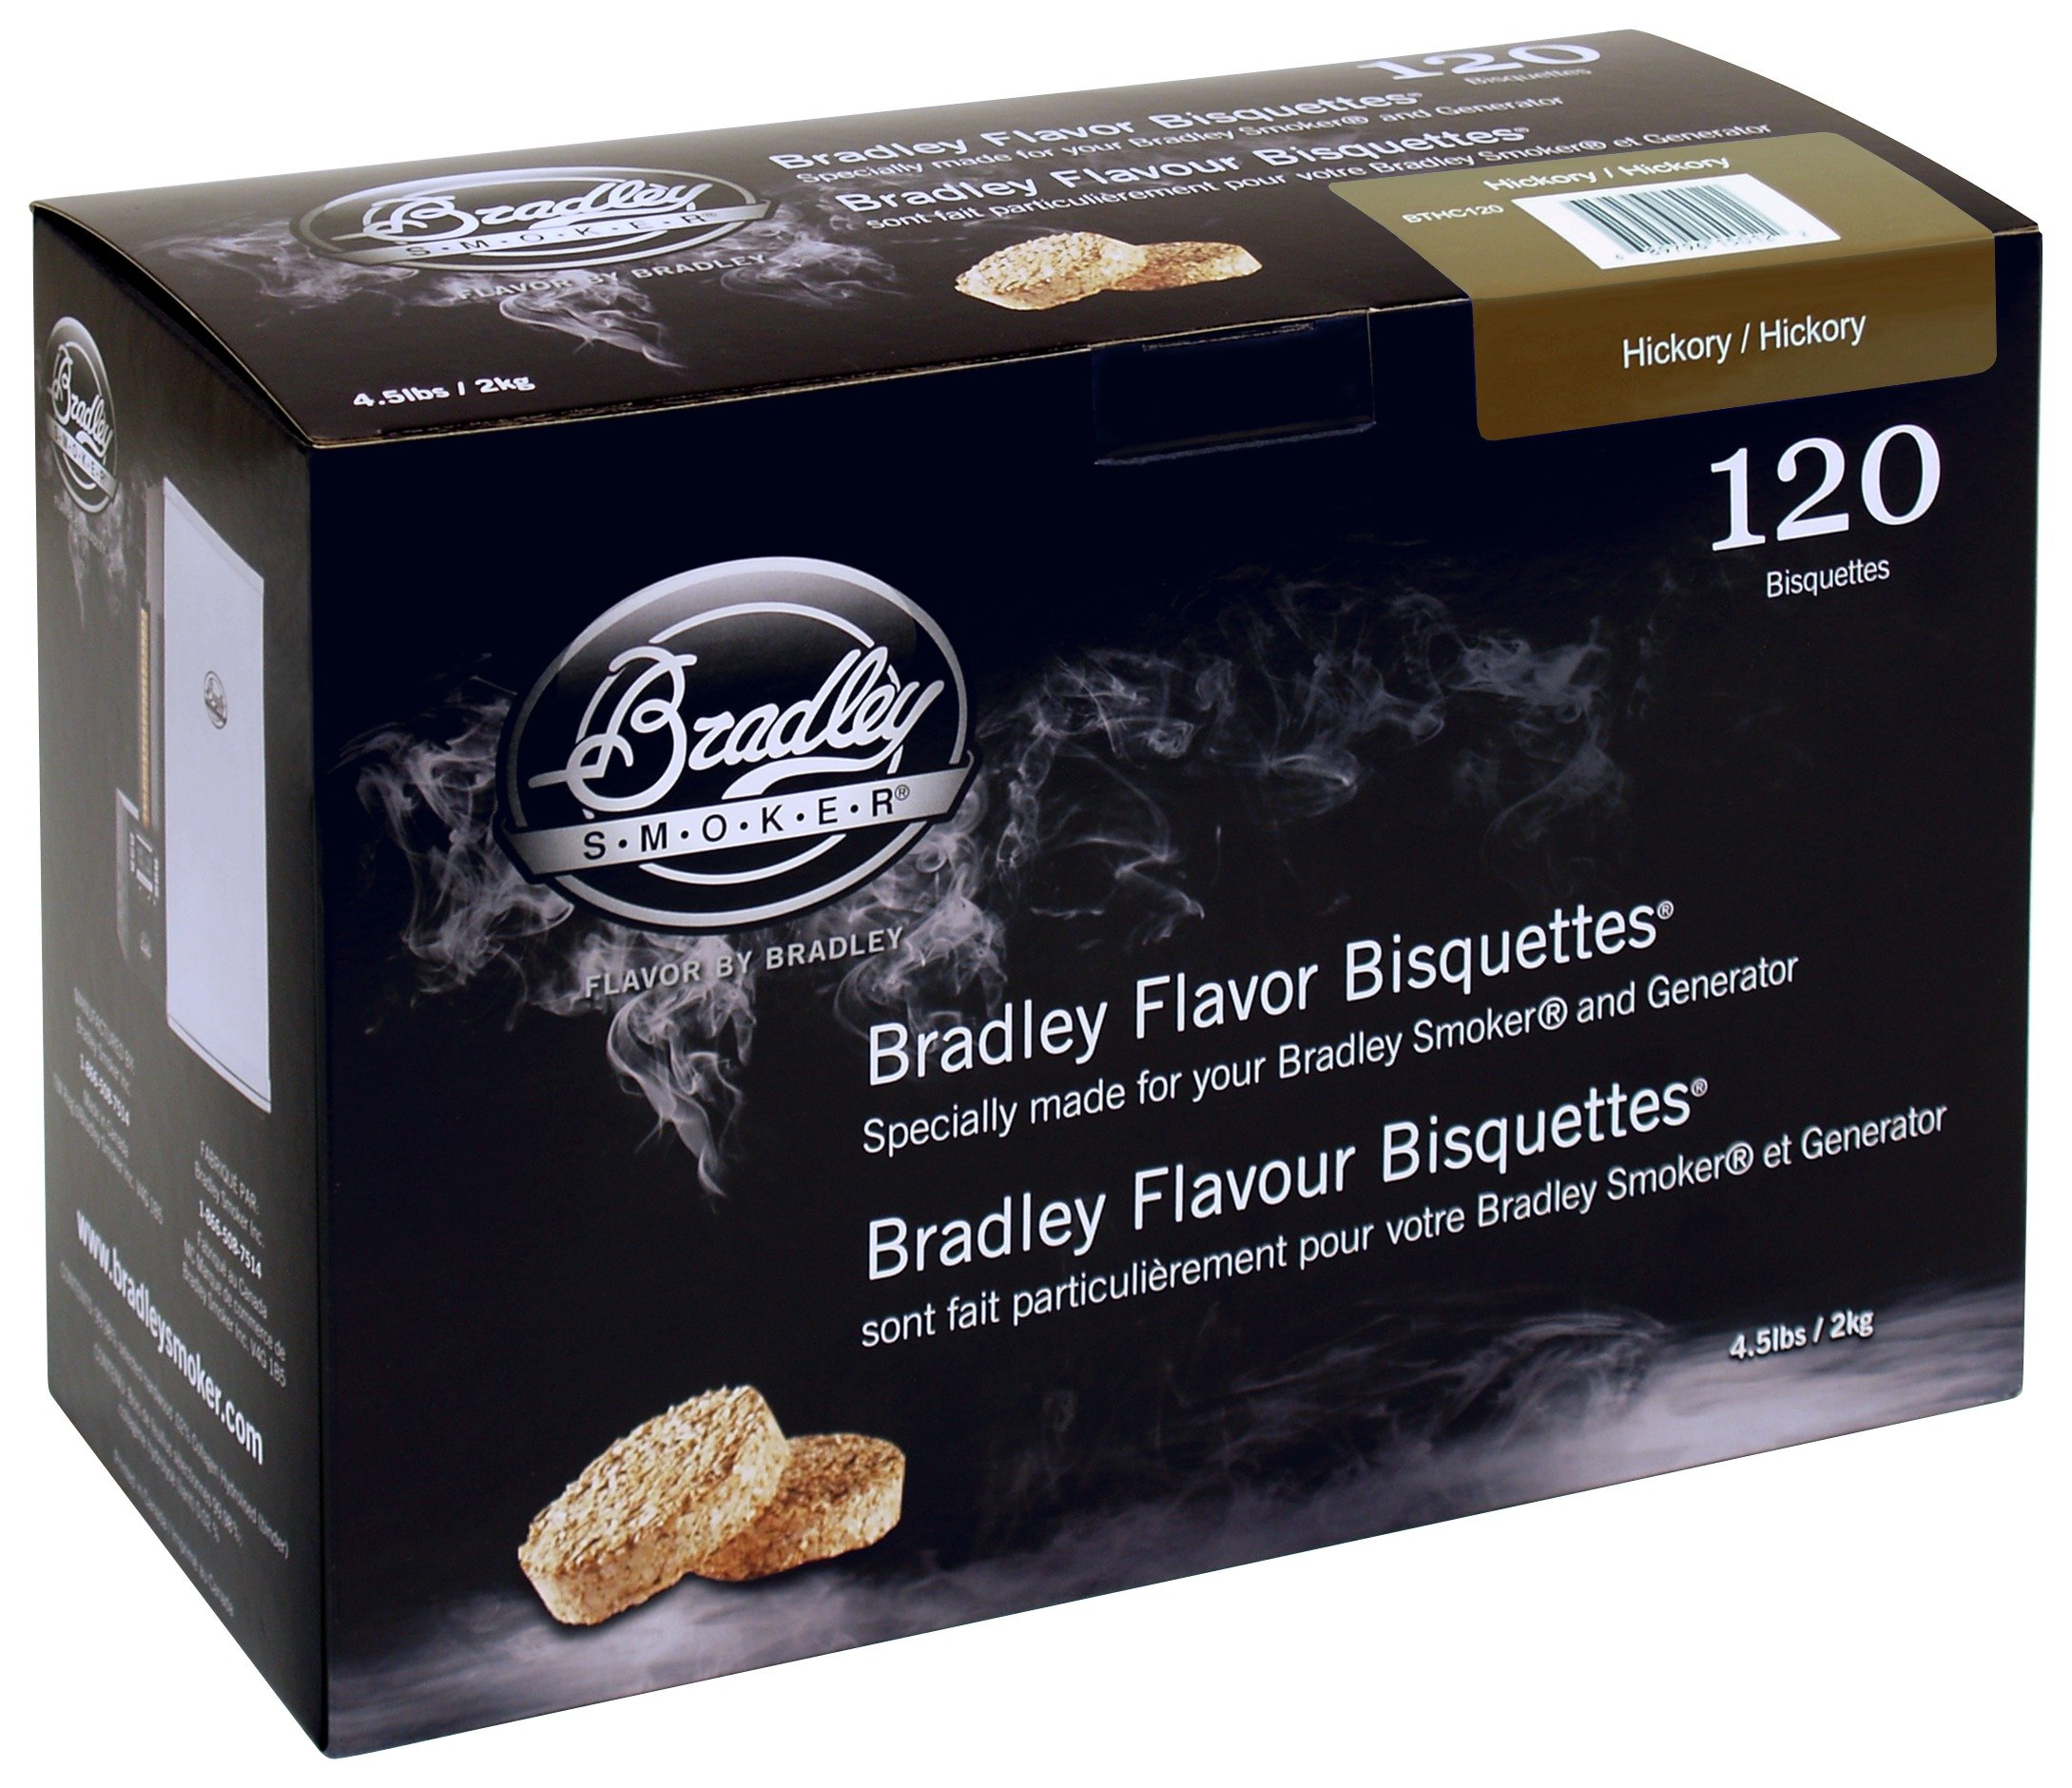 Bradley Smoker - Hickory Bisquettes - 120 Pack lowest price